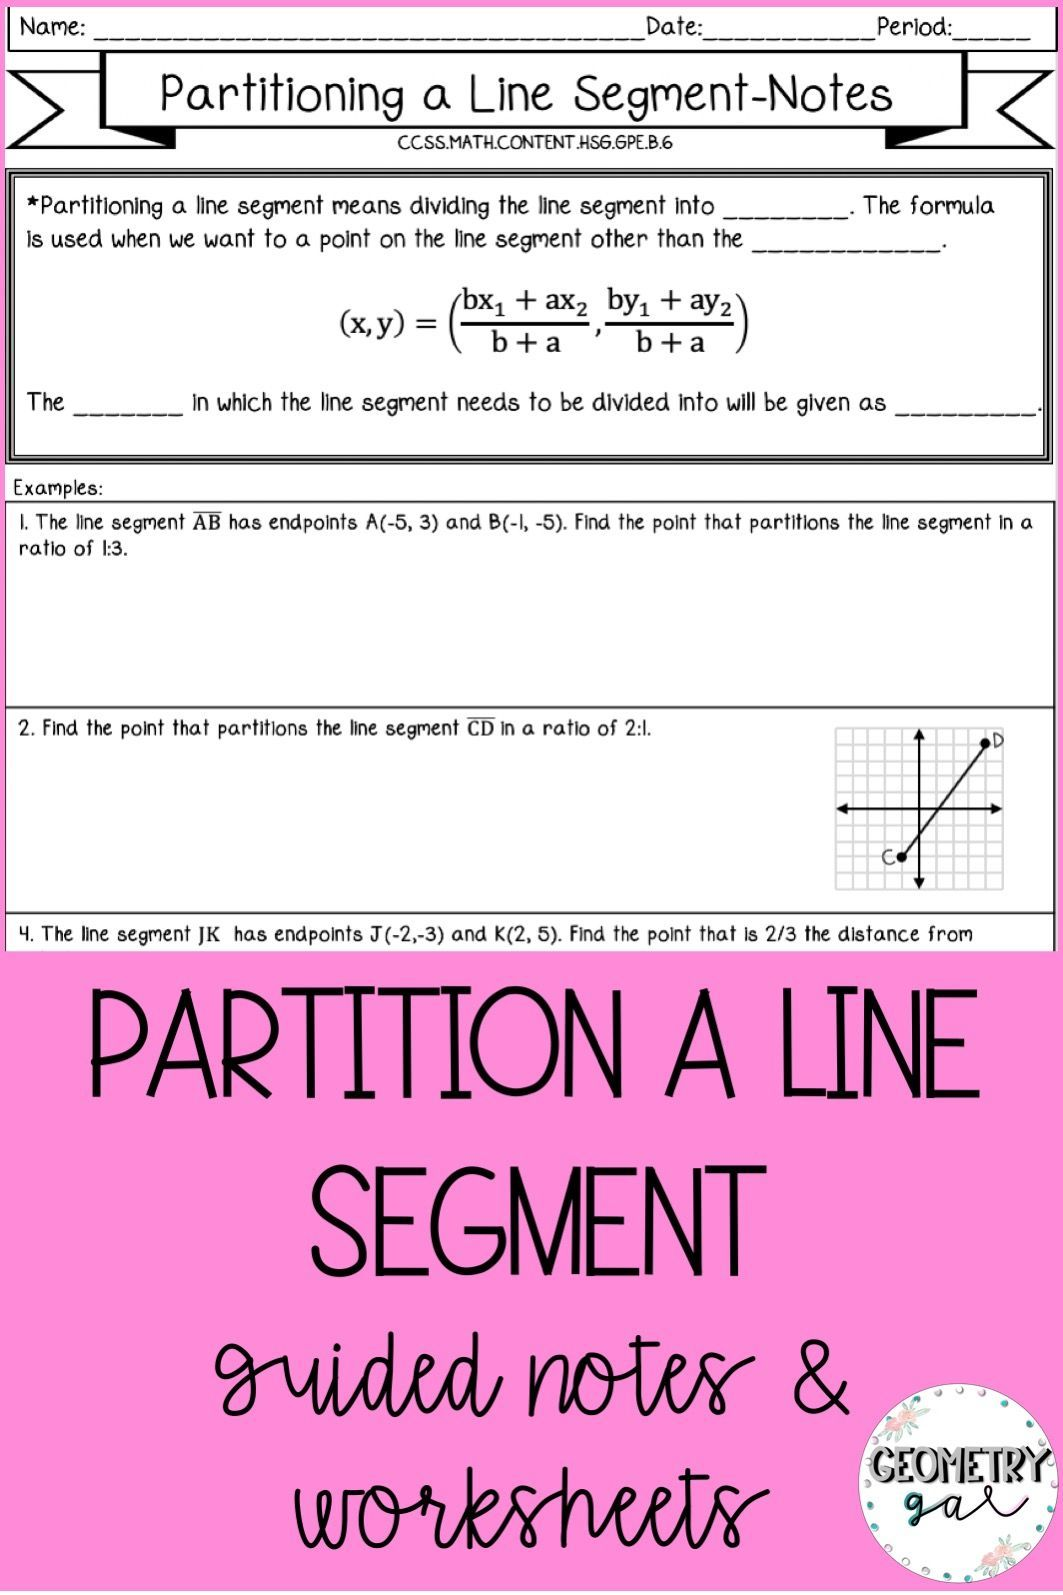 Partition A Line Segment Guided Notes Amp Worksheets